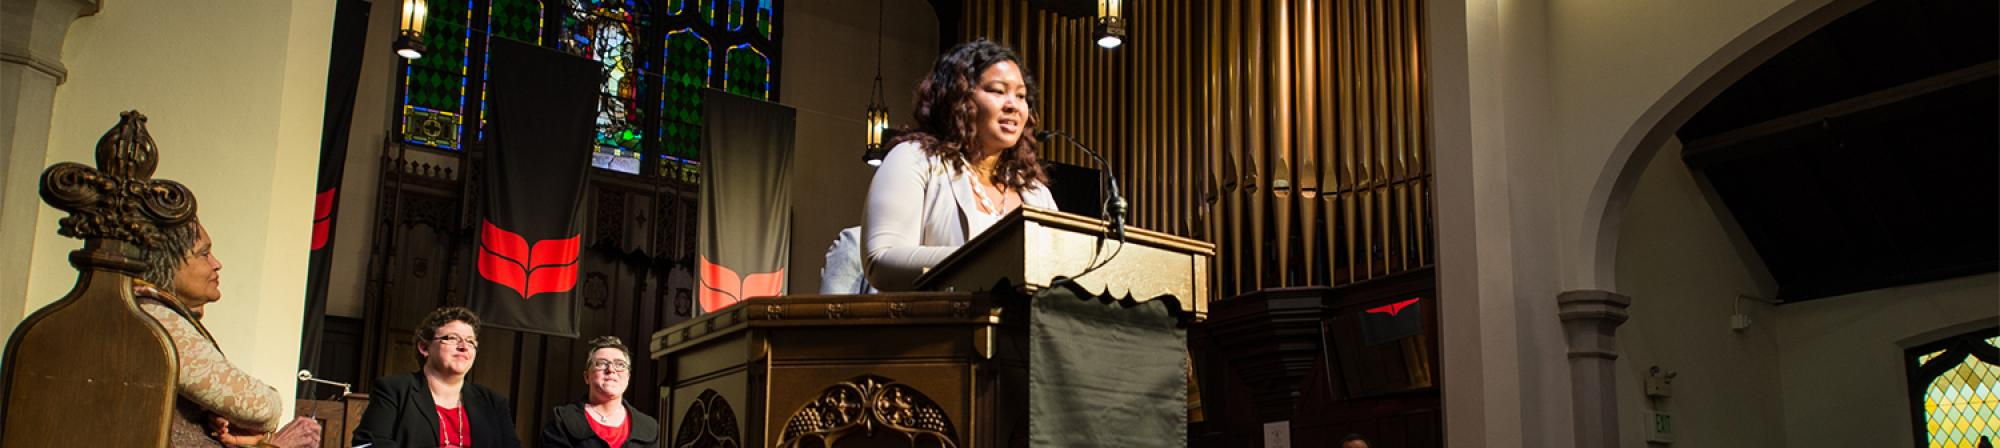 Kiah Williams delivers Grinnell Prize speech